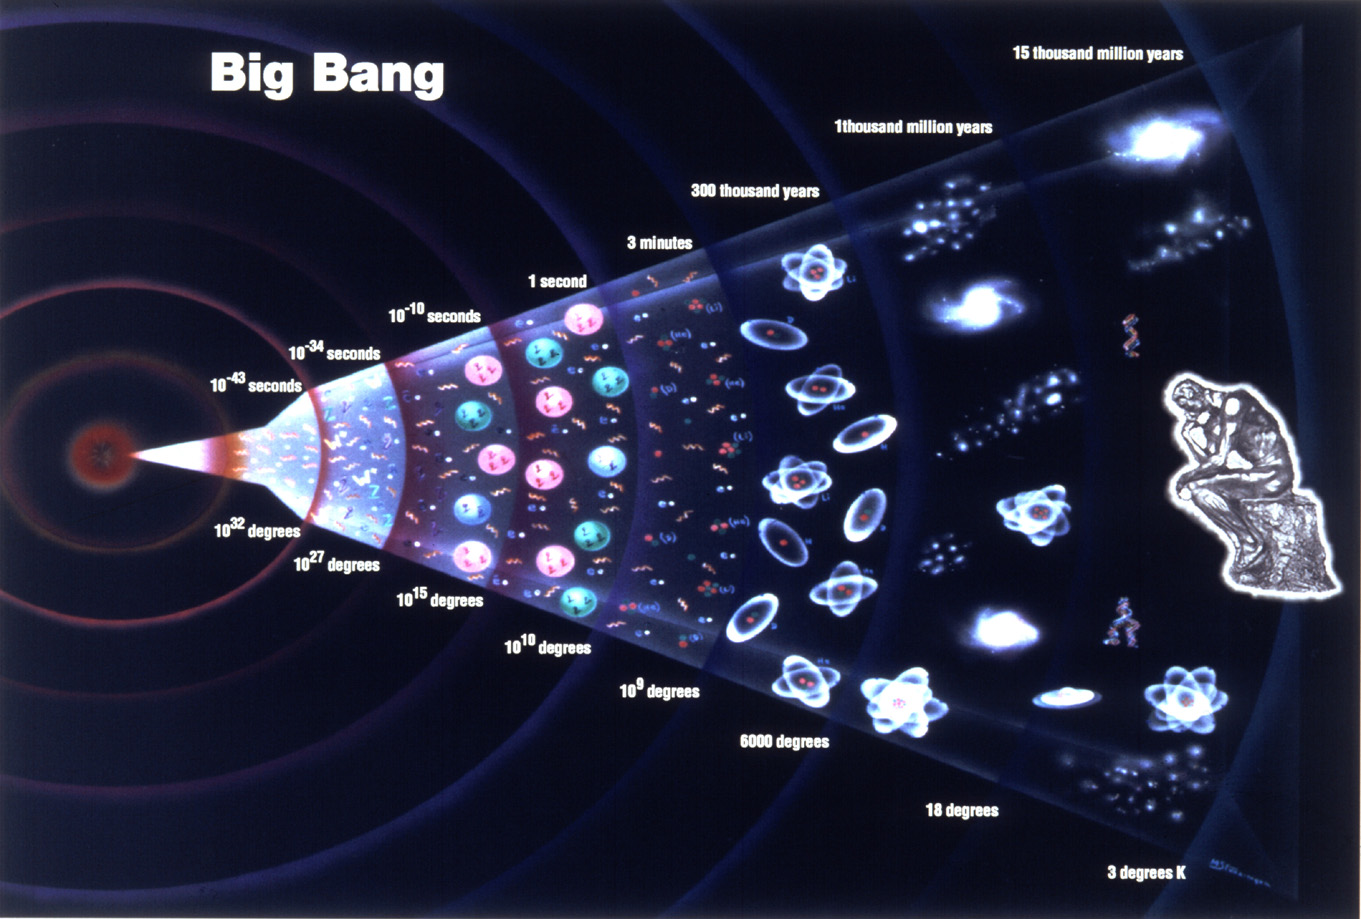 the big bang theory and the beginning of the universe